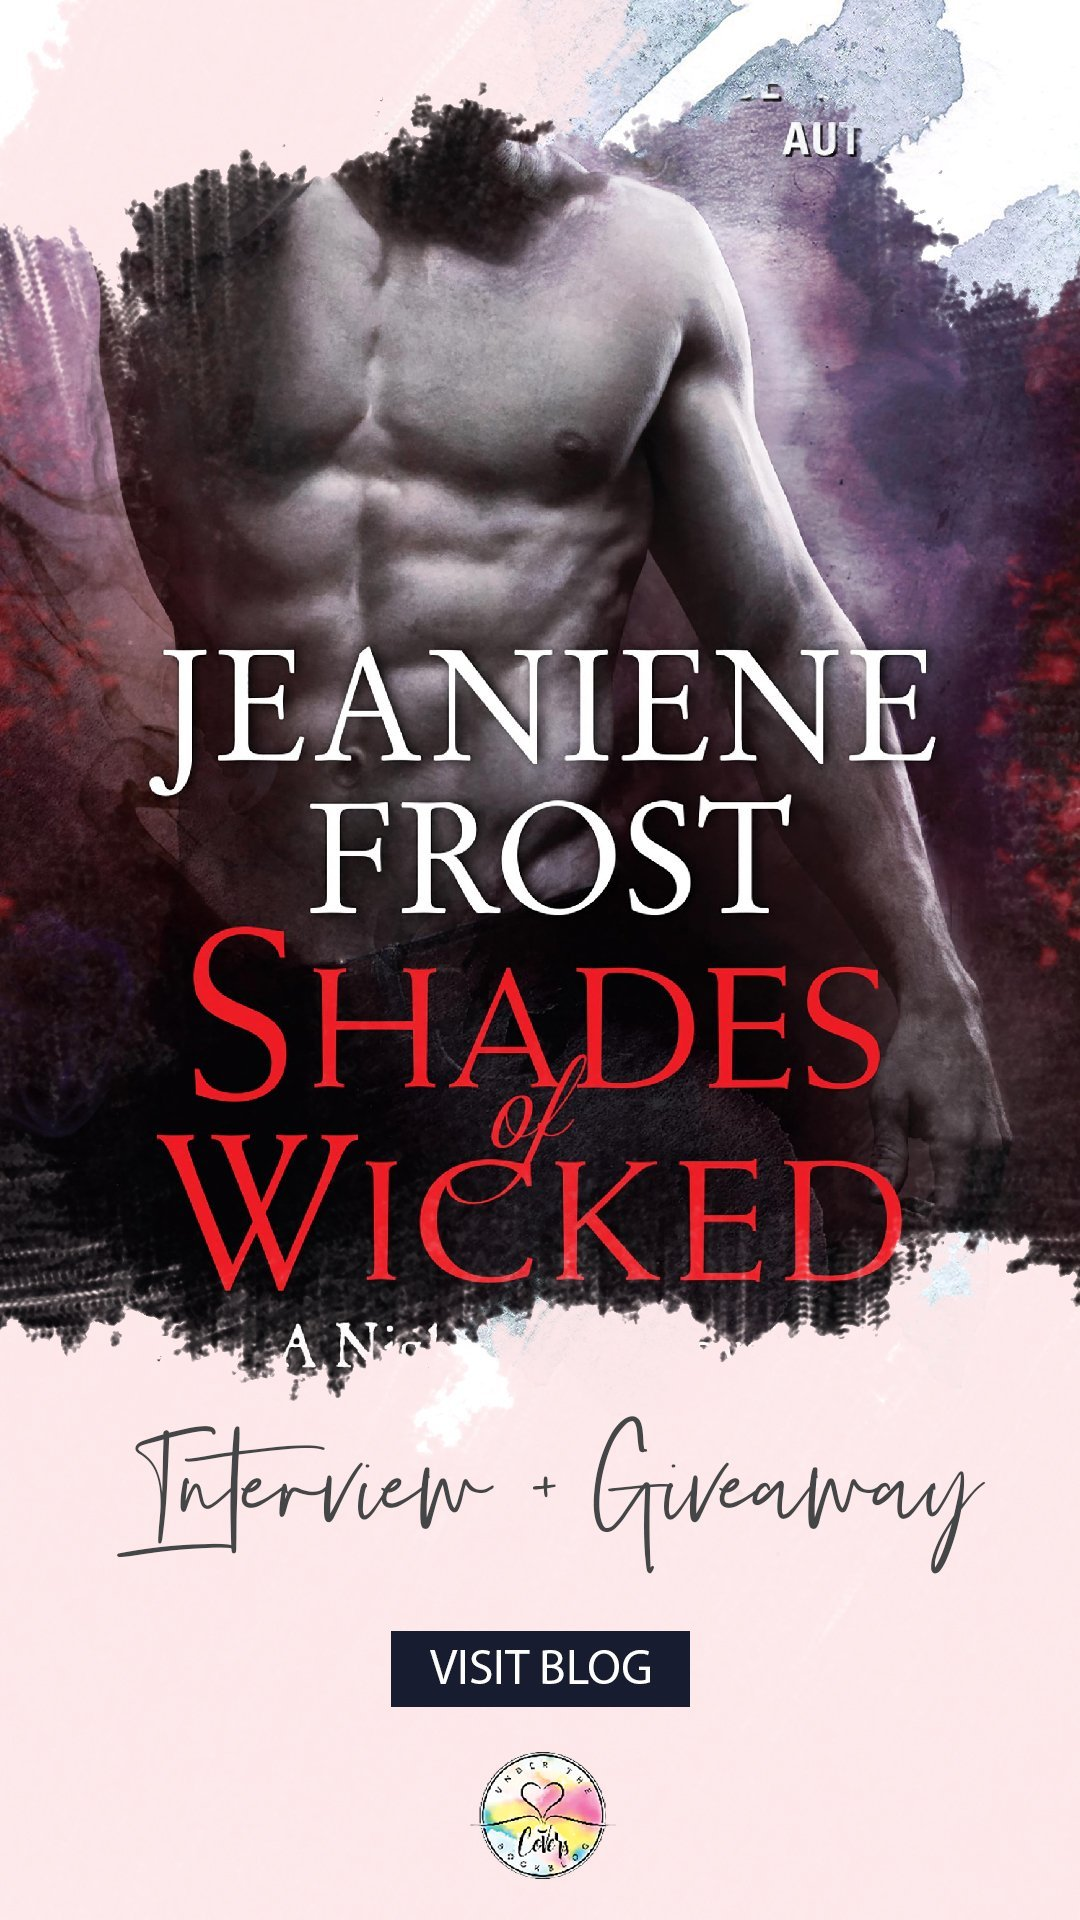 Interview and Giveaway with Jeaniene Frost